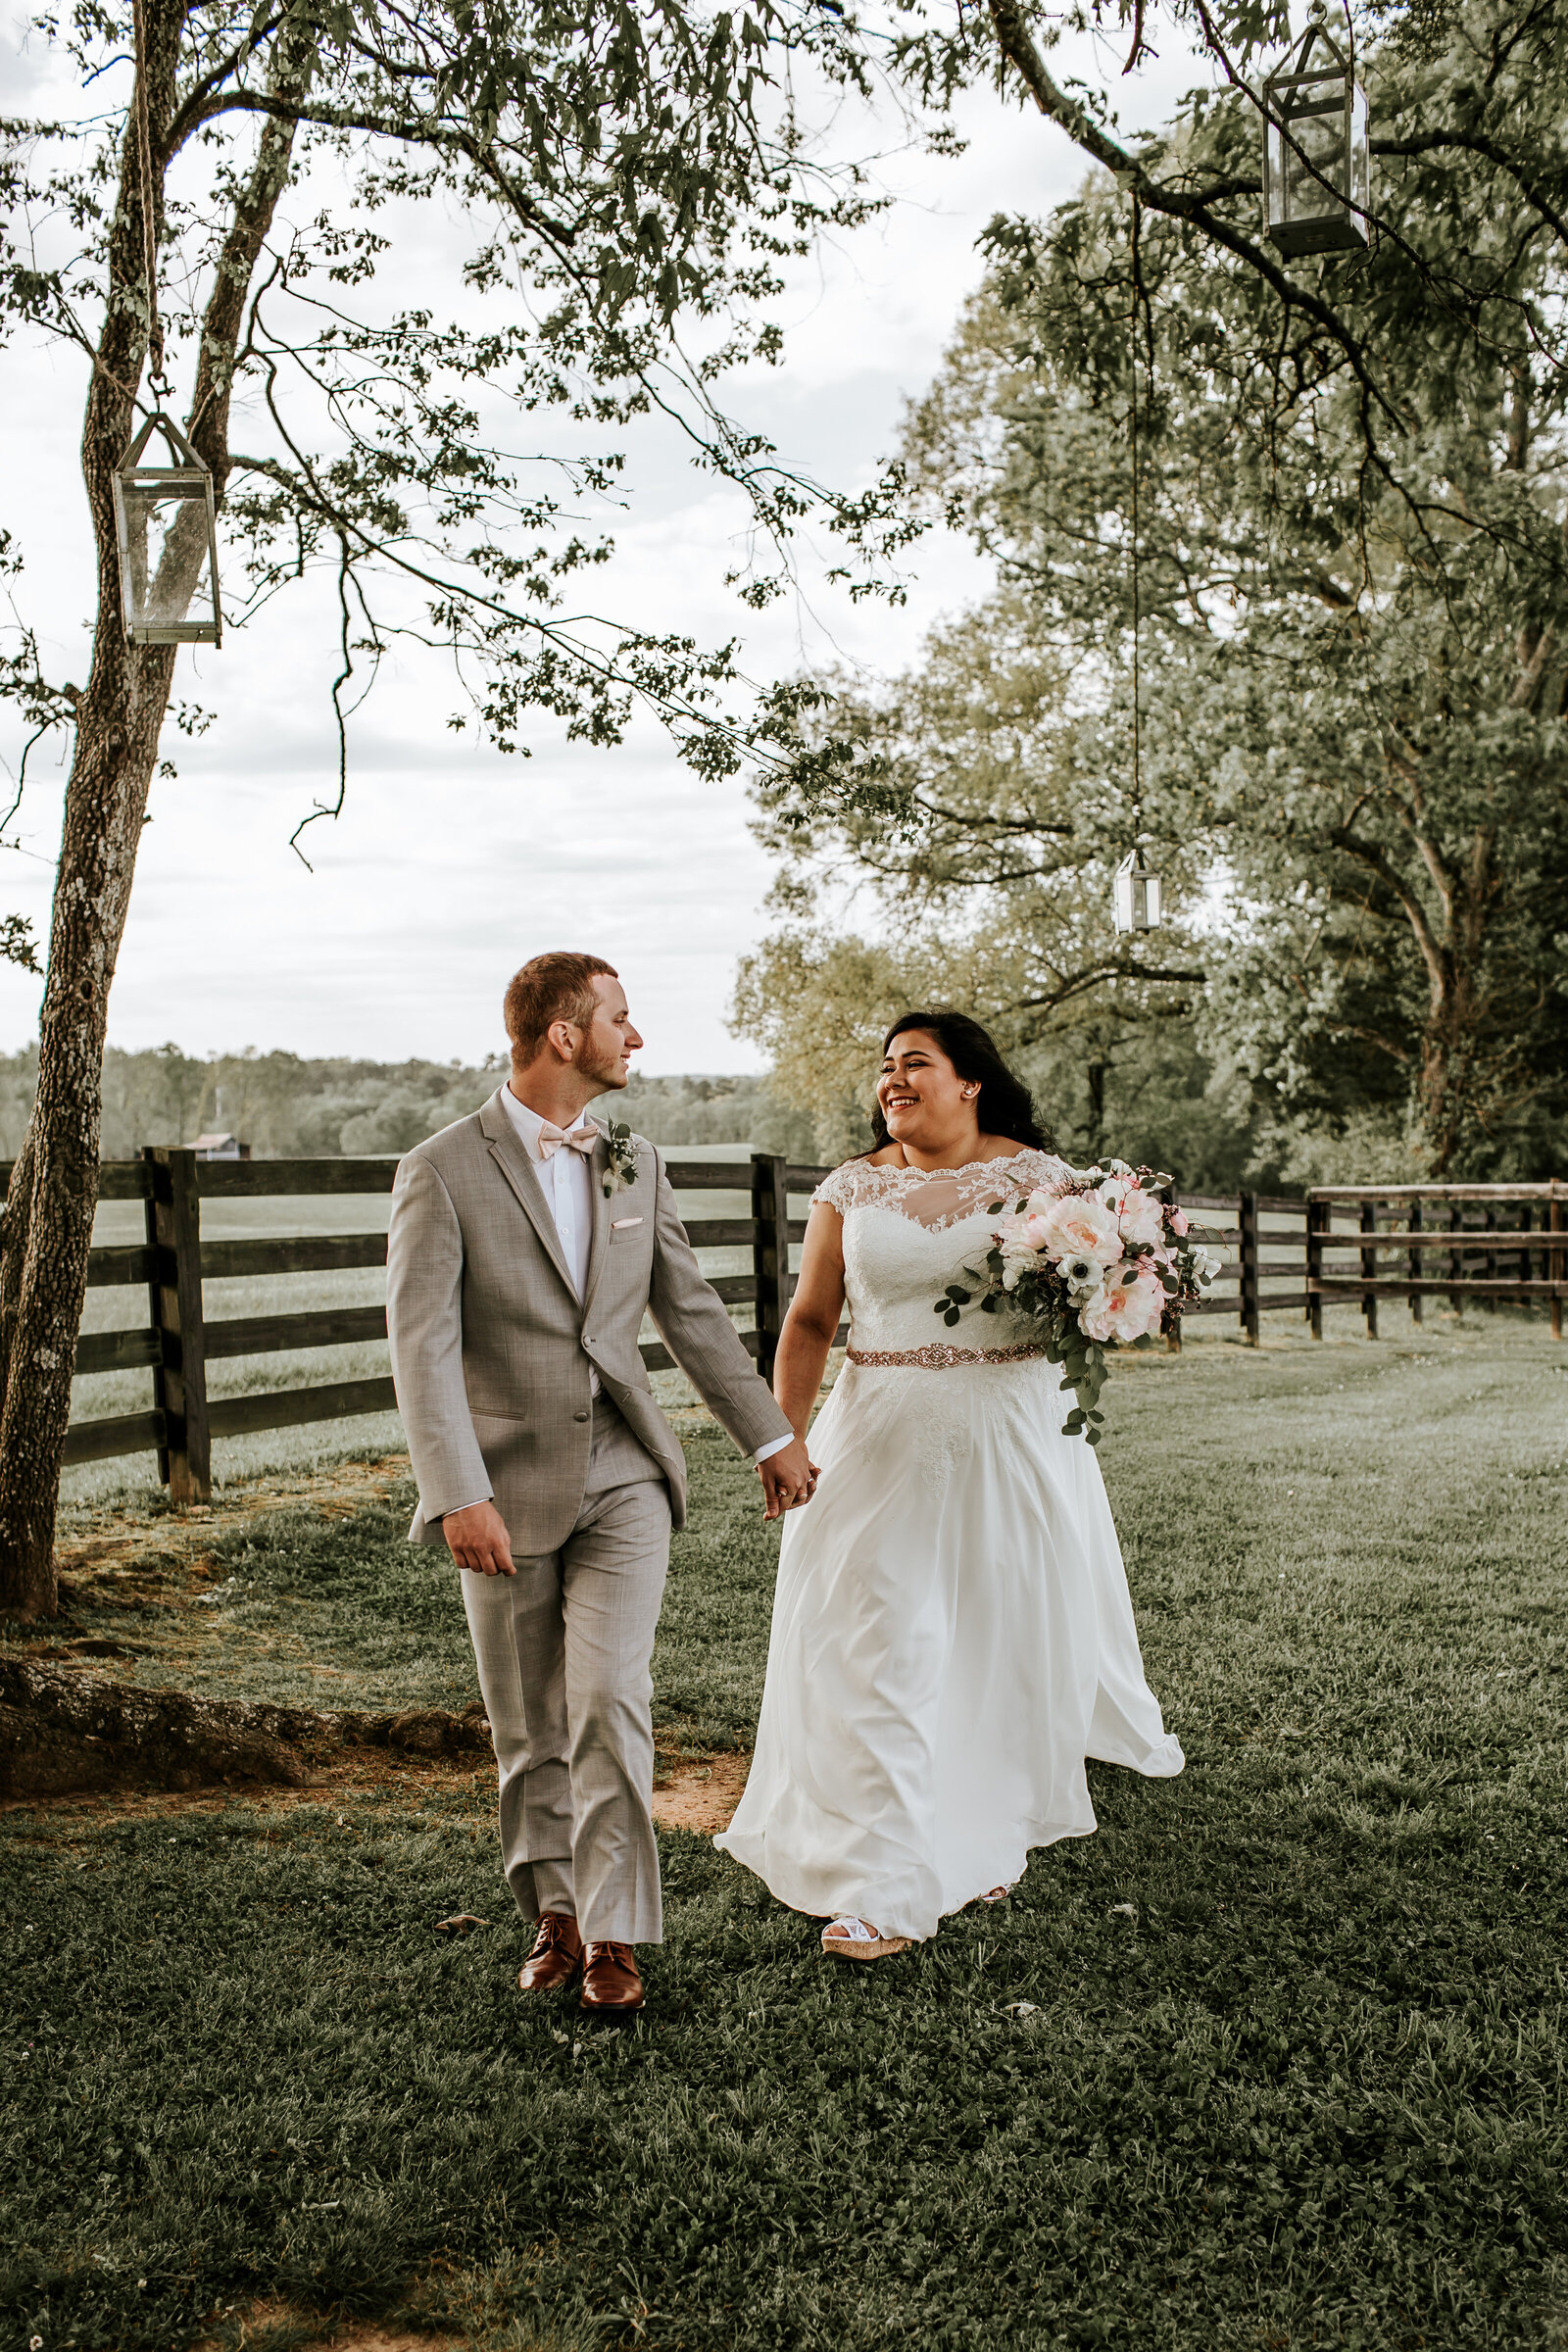 Bride and Groom during their wedding at willowick farm in McDonough, Ga